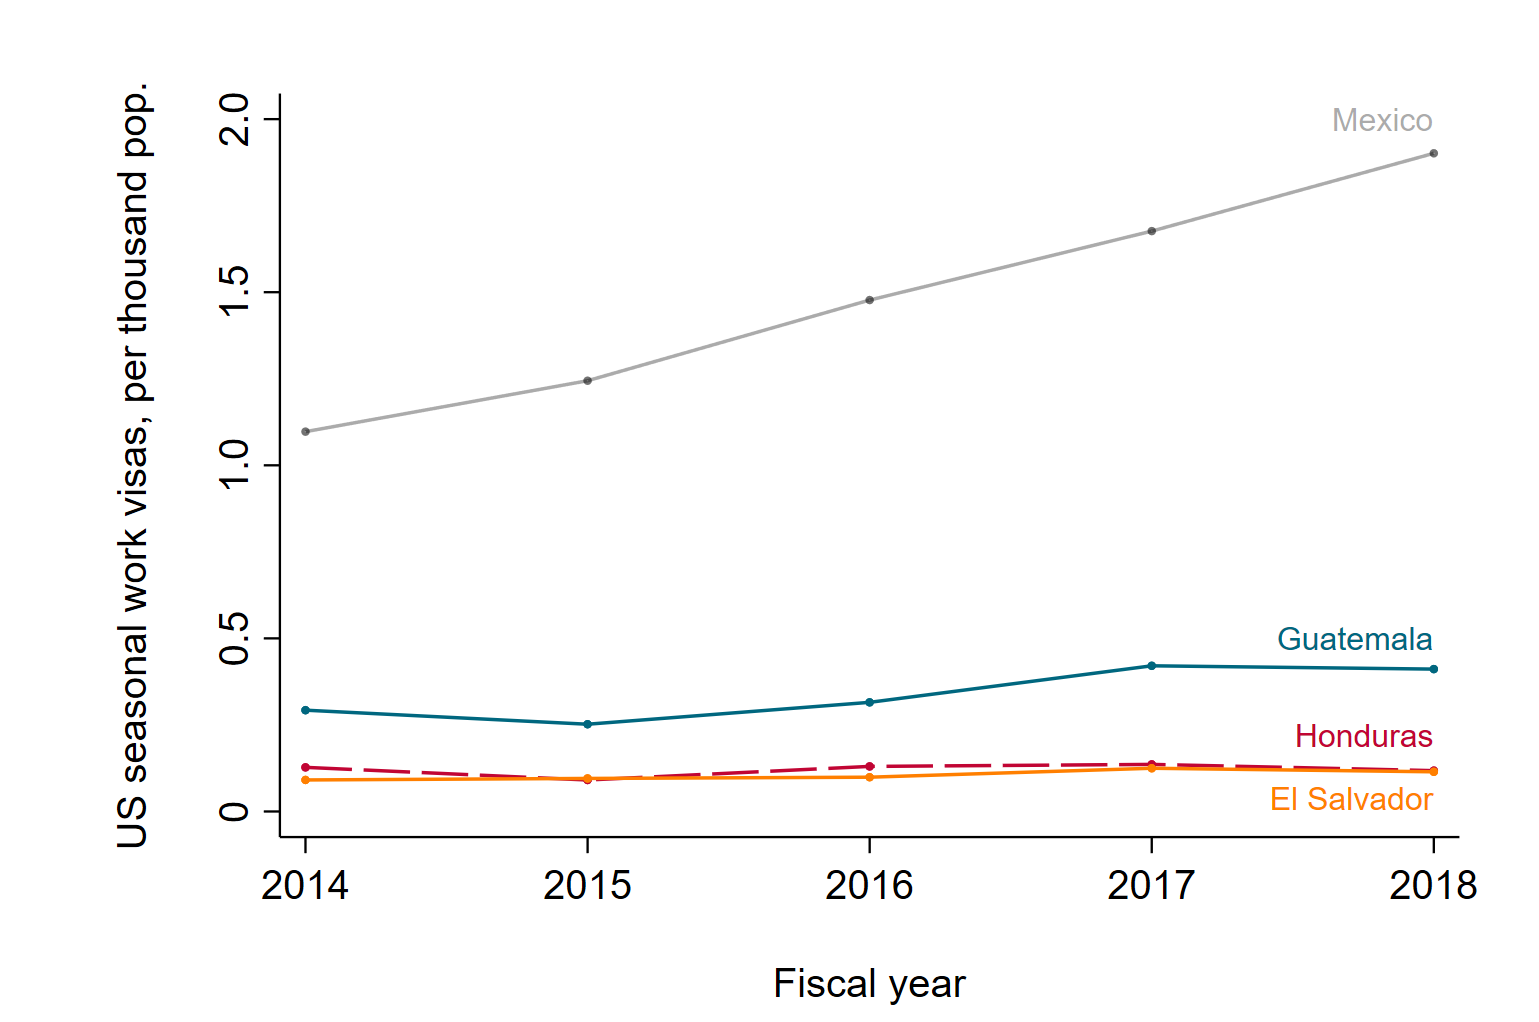 A figure showing that Northern Triangle access to US seasonal work visas has been very low and stagnant in recent years, even as Mexico's access has doubled relative to its population.